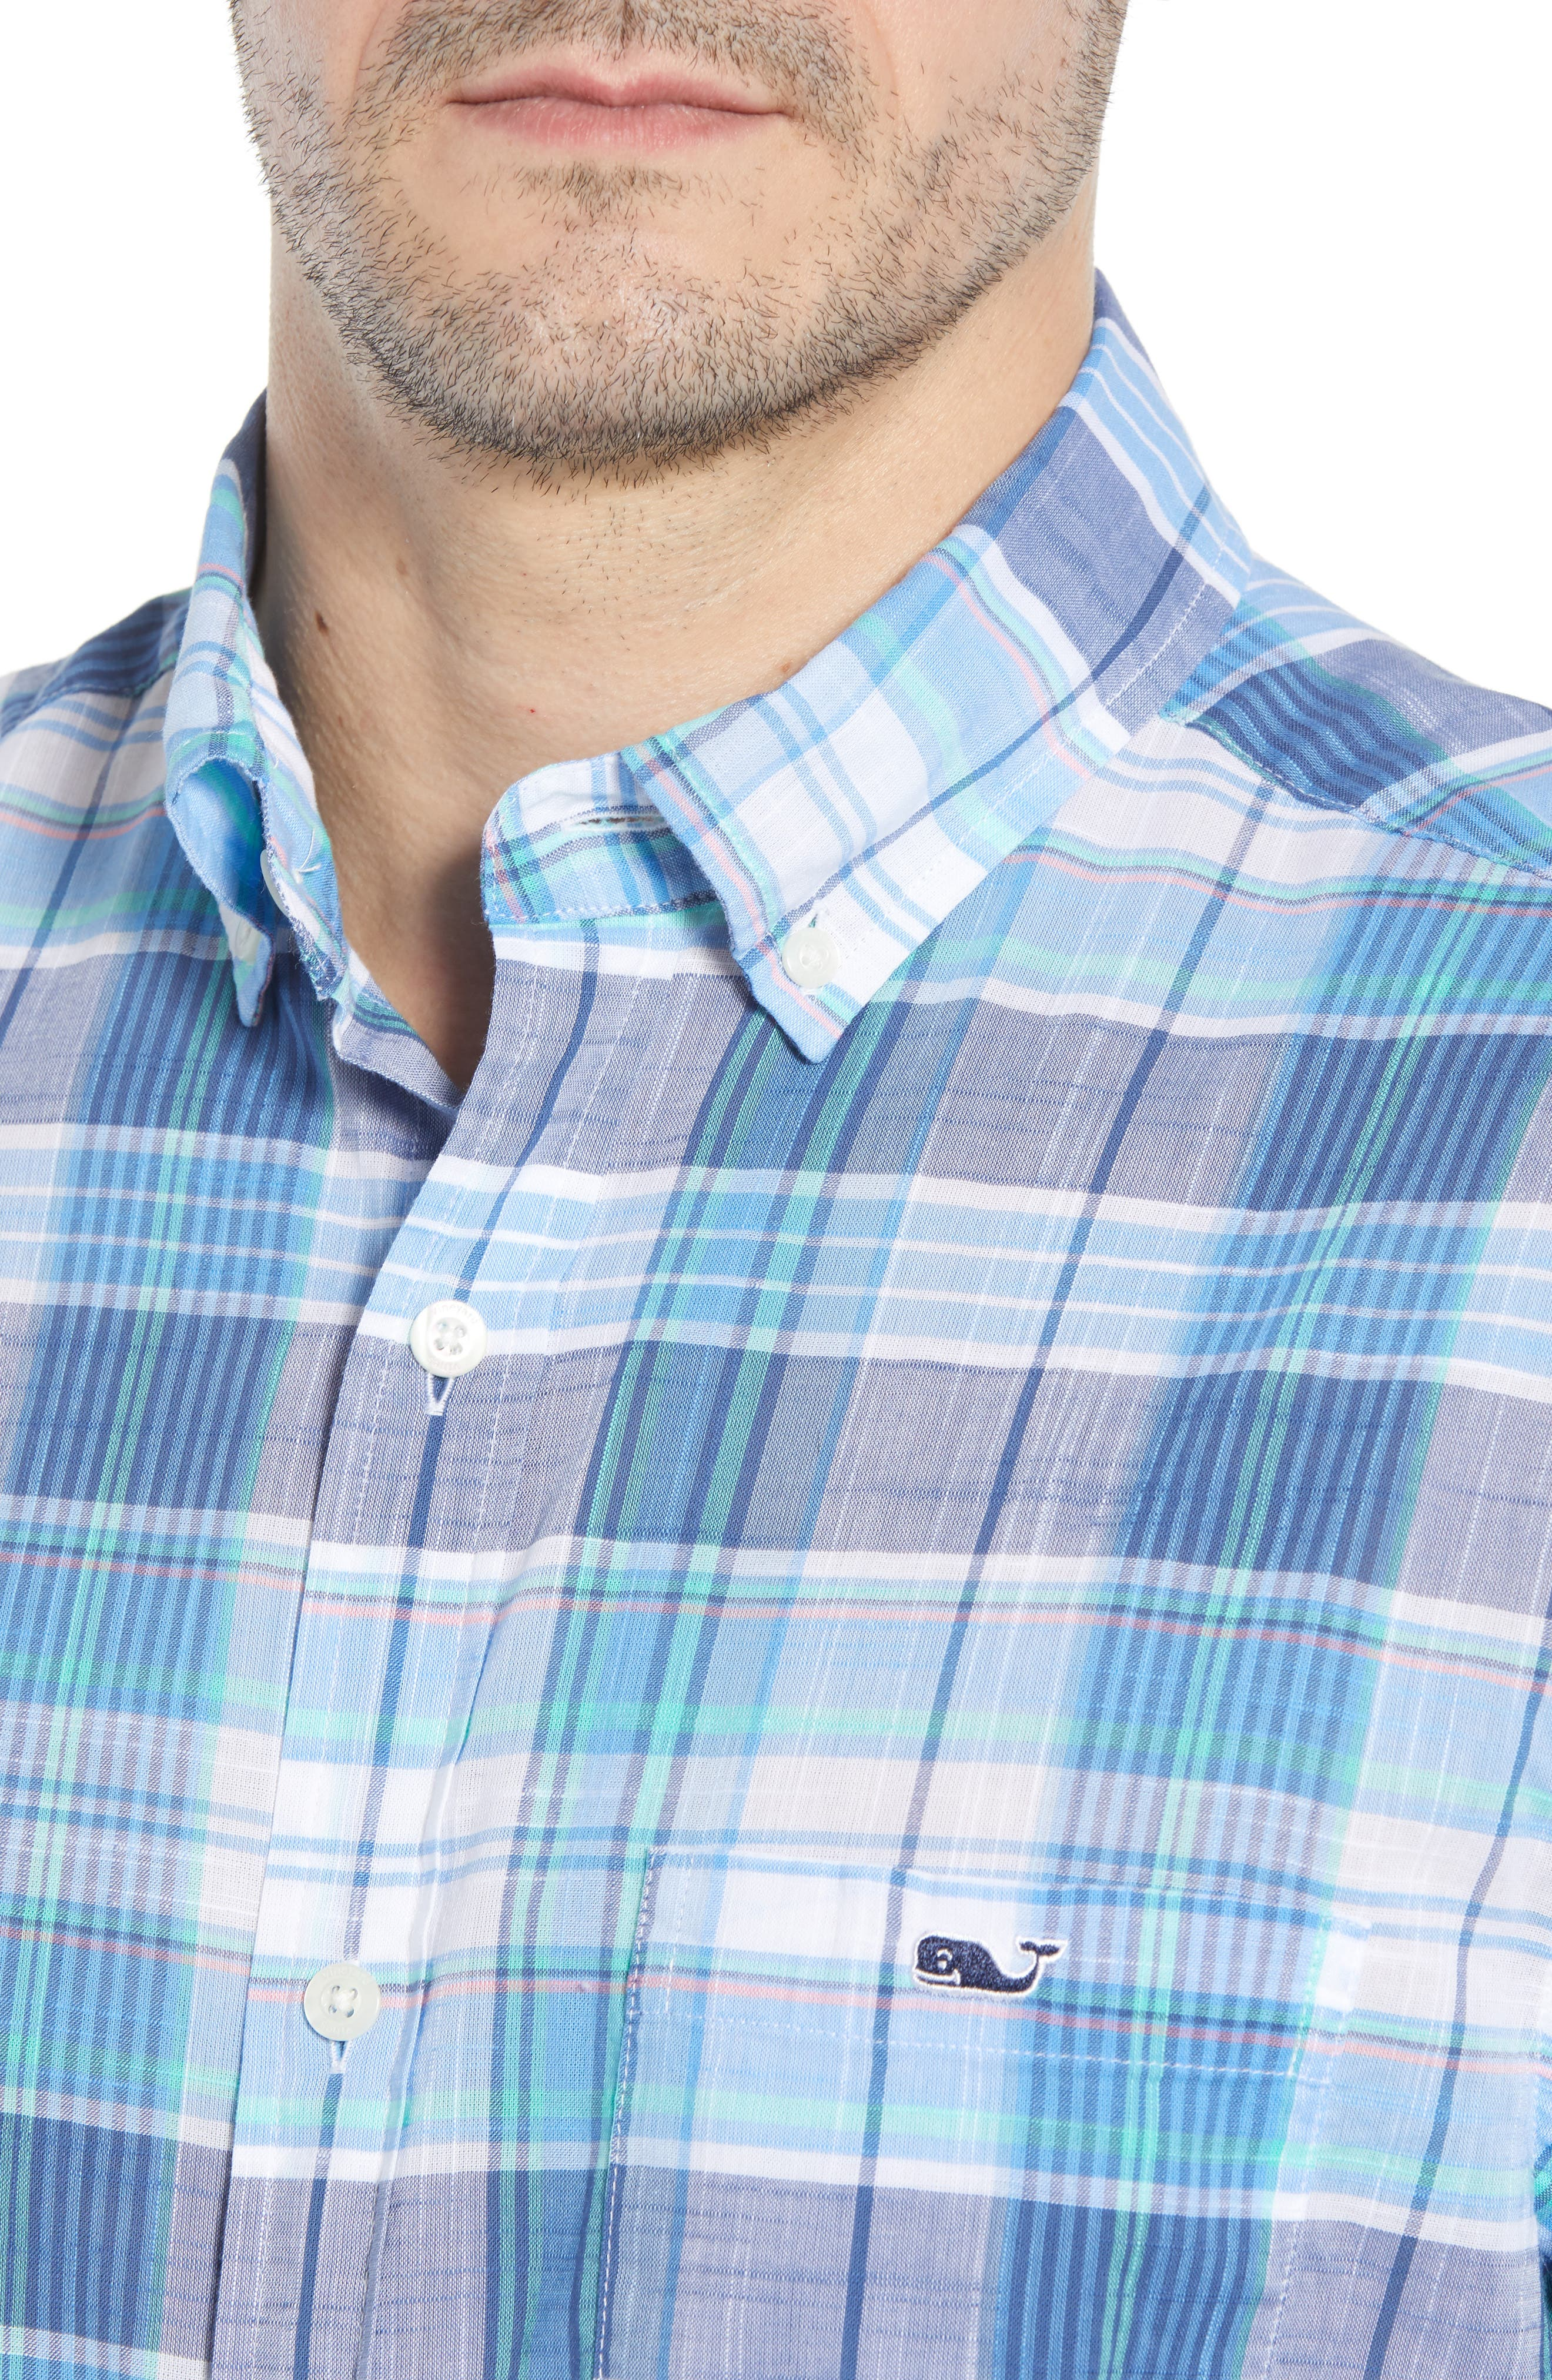 Smith Point Tucker Classic Fit Plaid Sport Shirt,                             Alternate thumbnail 4, color,                             461